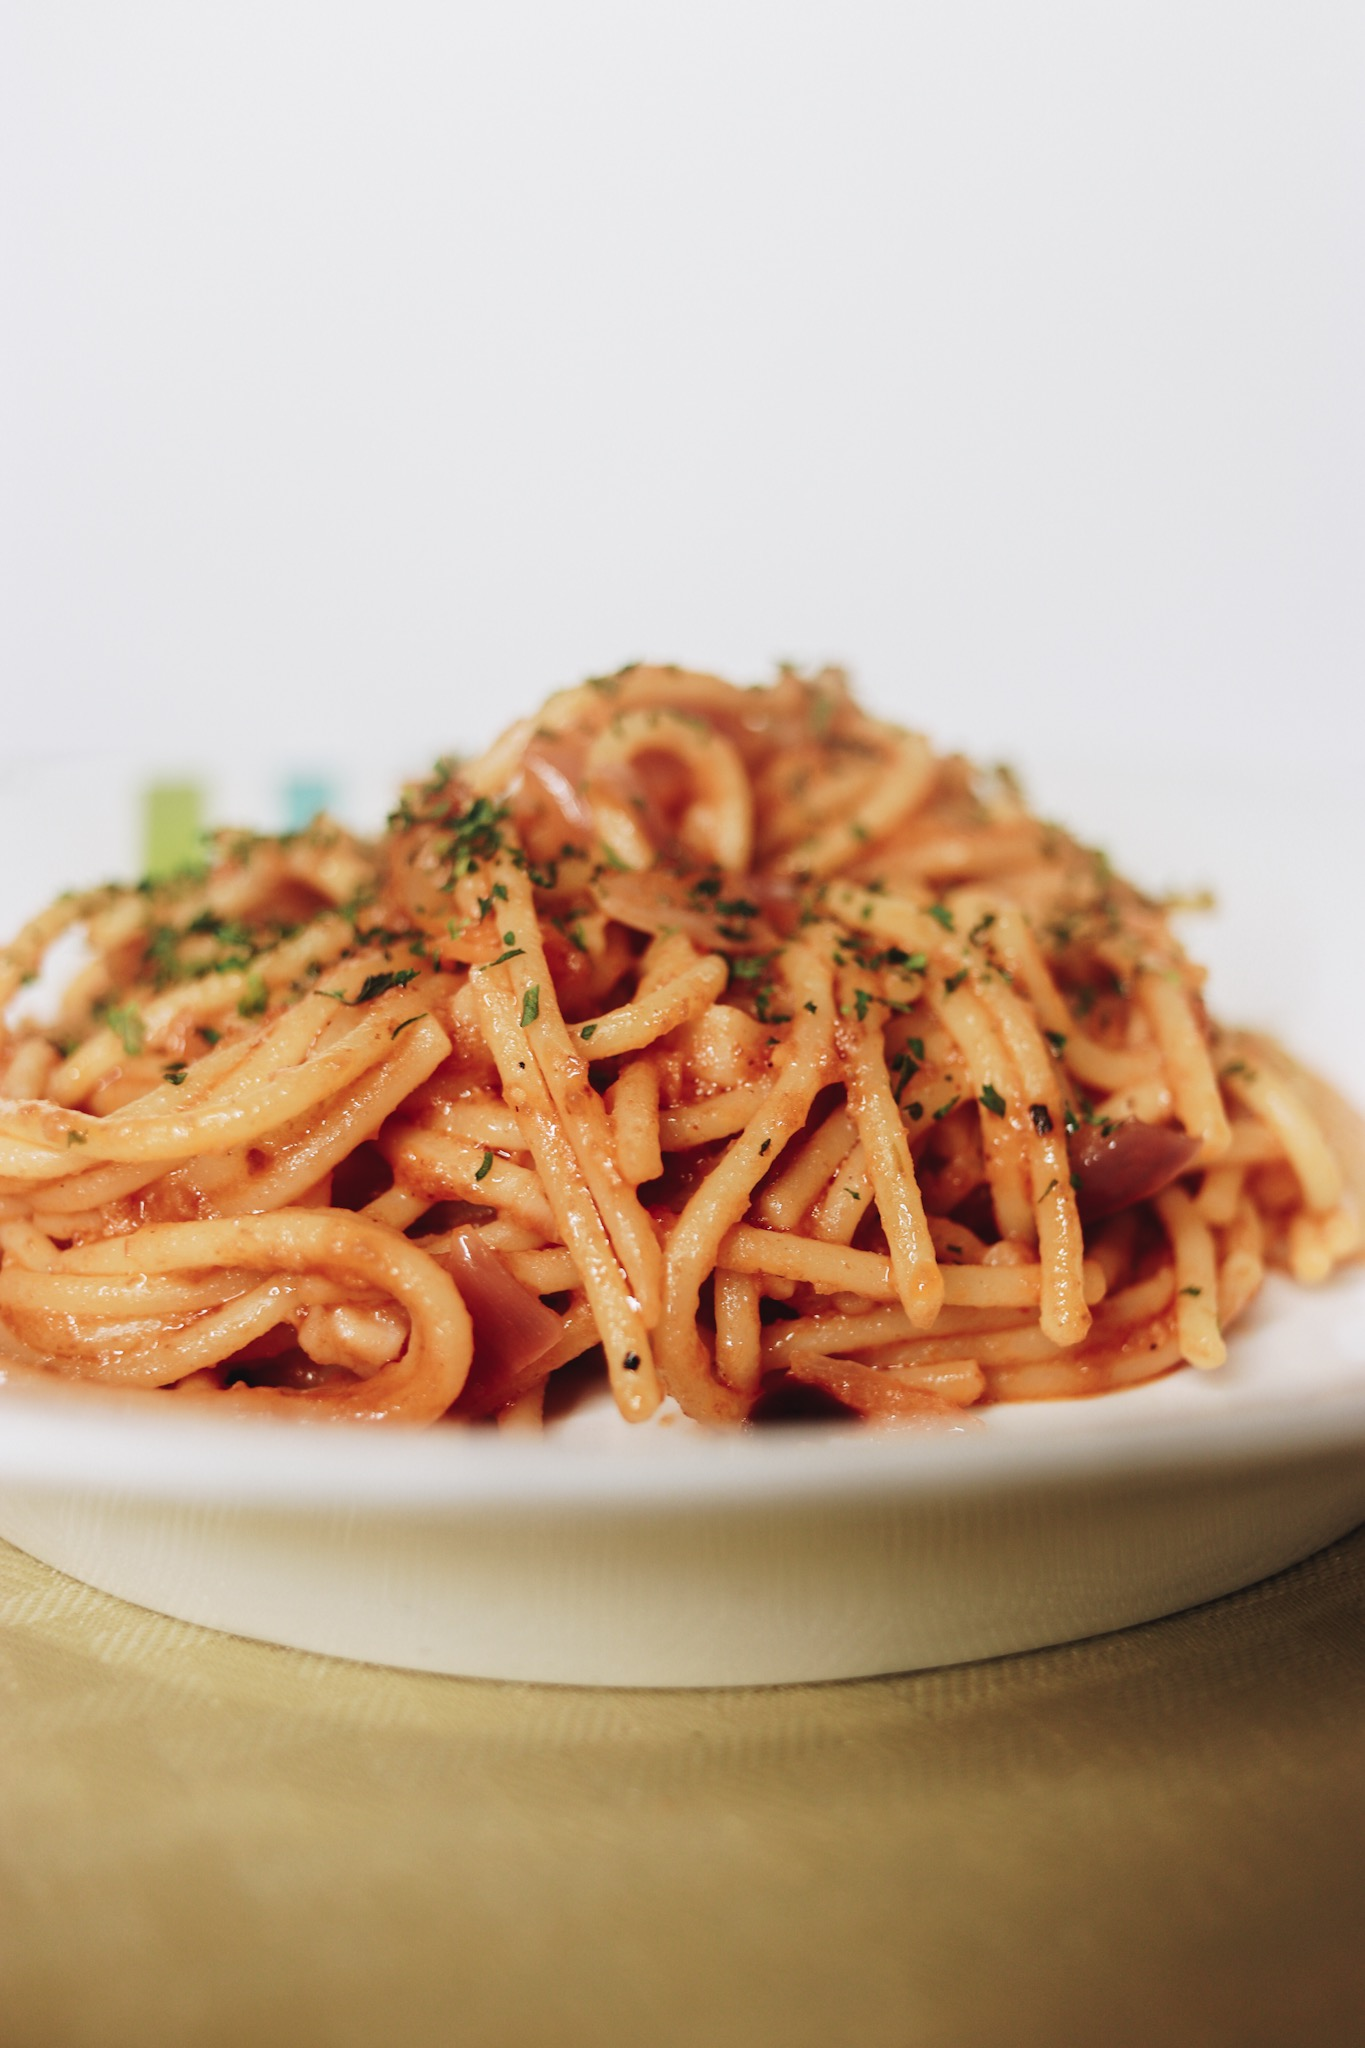 Spaghetti recipe with roast beef harsh